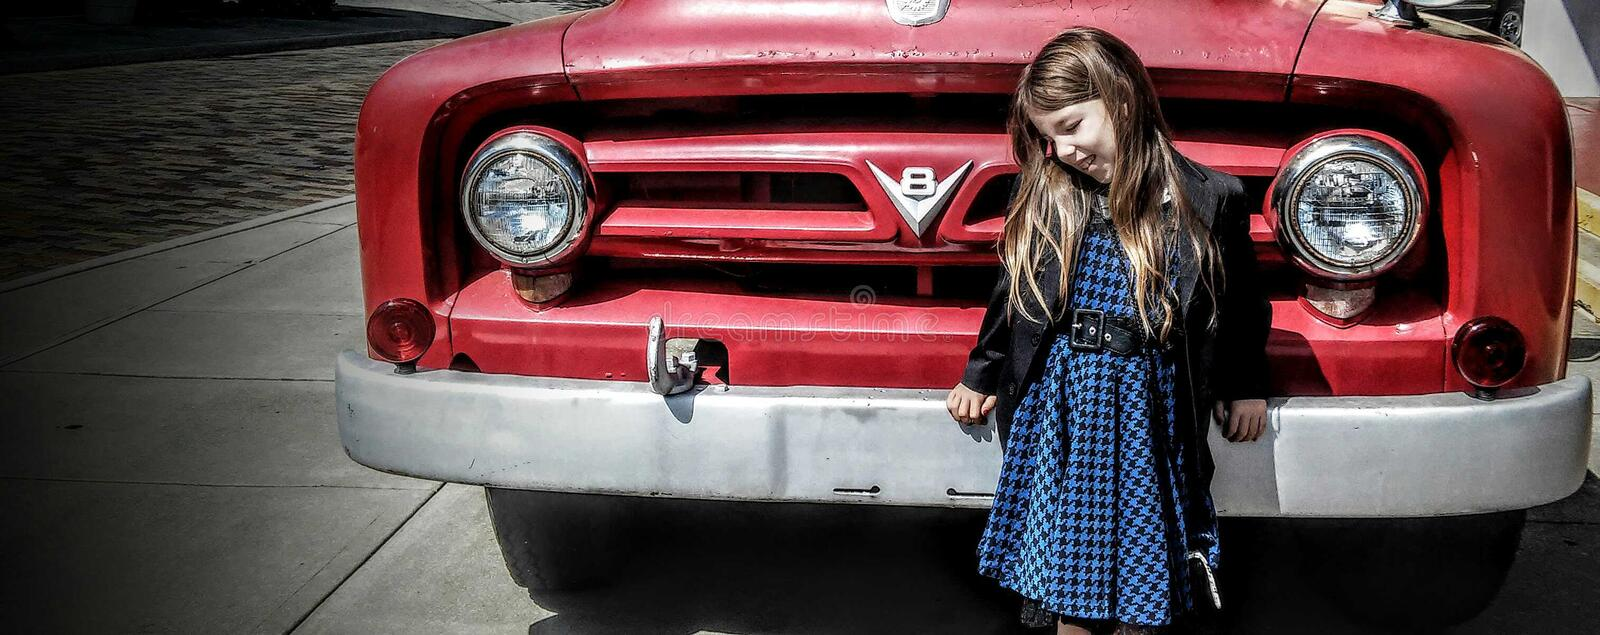 Old red engine and young blue girl royalty free stock photography